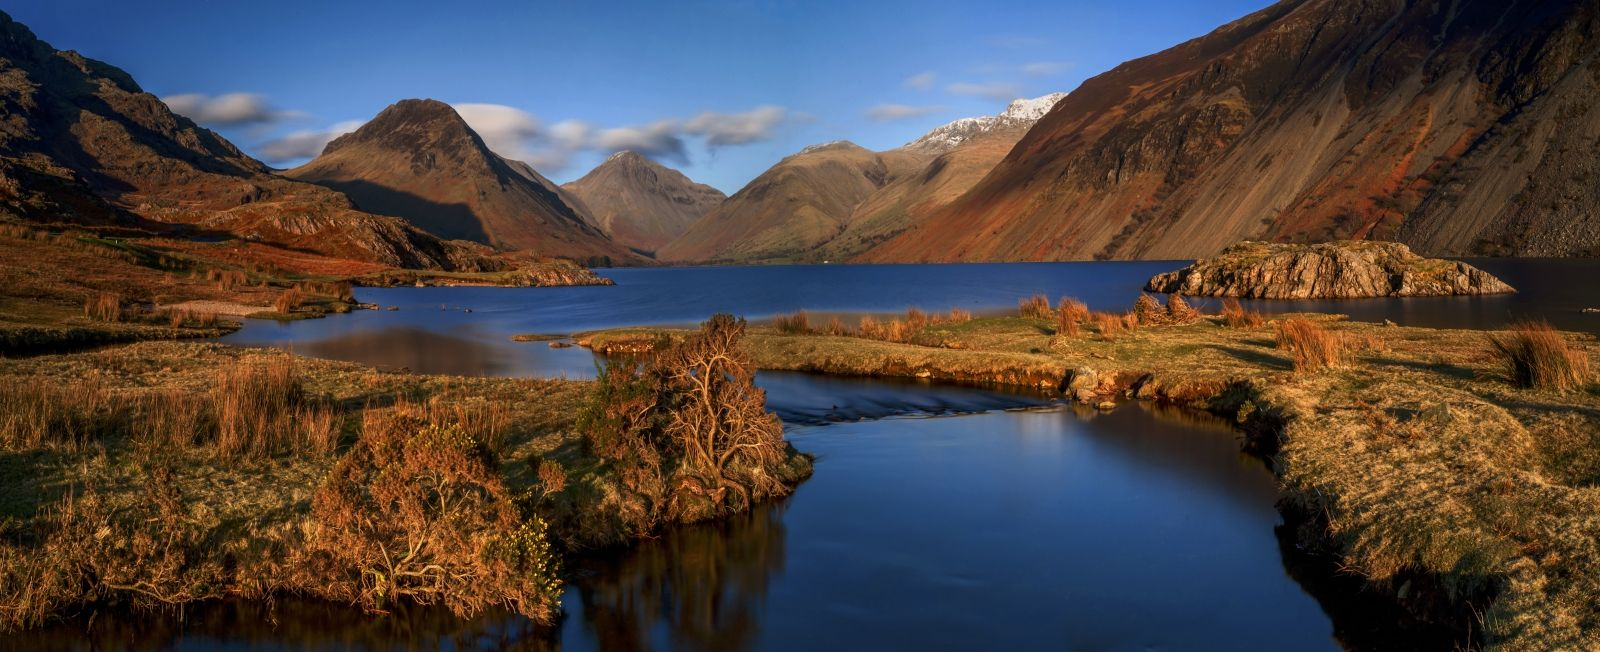 Panoramic Landscape Photography Gallery Buy Canvas Prints Photo Art Sale Landscape Photography Landscape Lake District